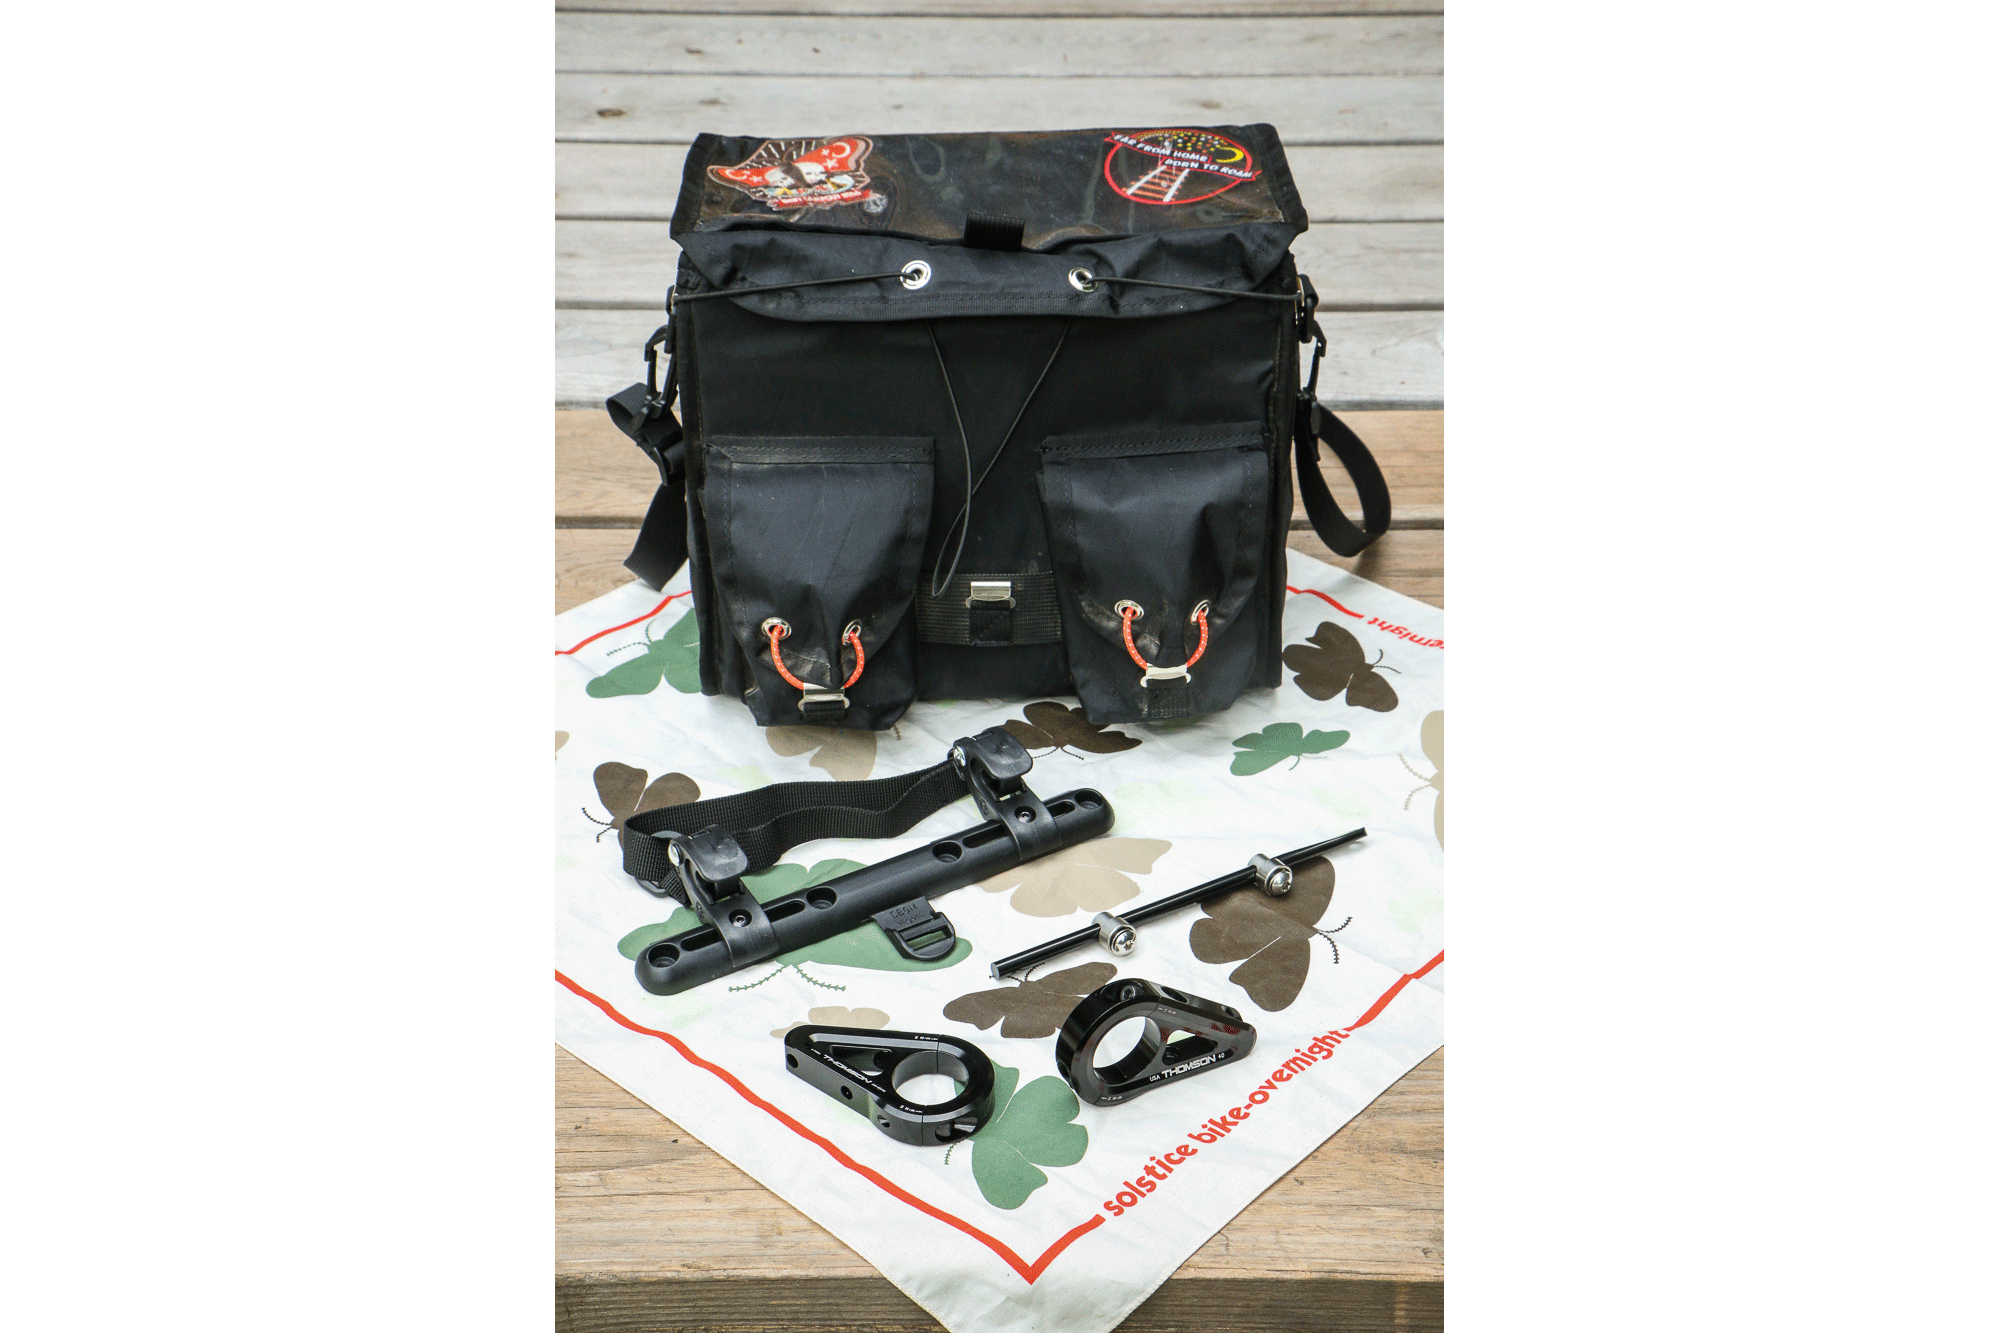 The basic ingredients list: Swift Ozette bag, Ortlieb pannier rail, Tubus rack stay and clamps, and Thomson direct mount stem.